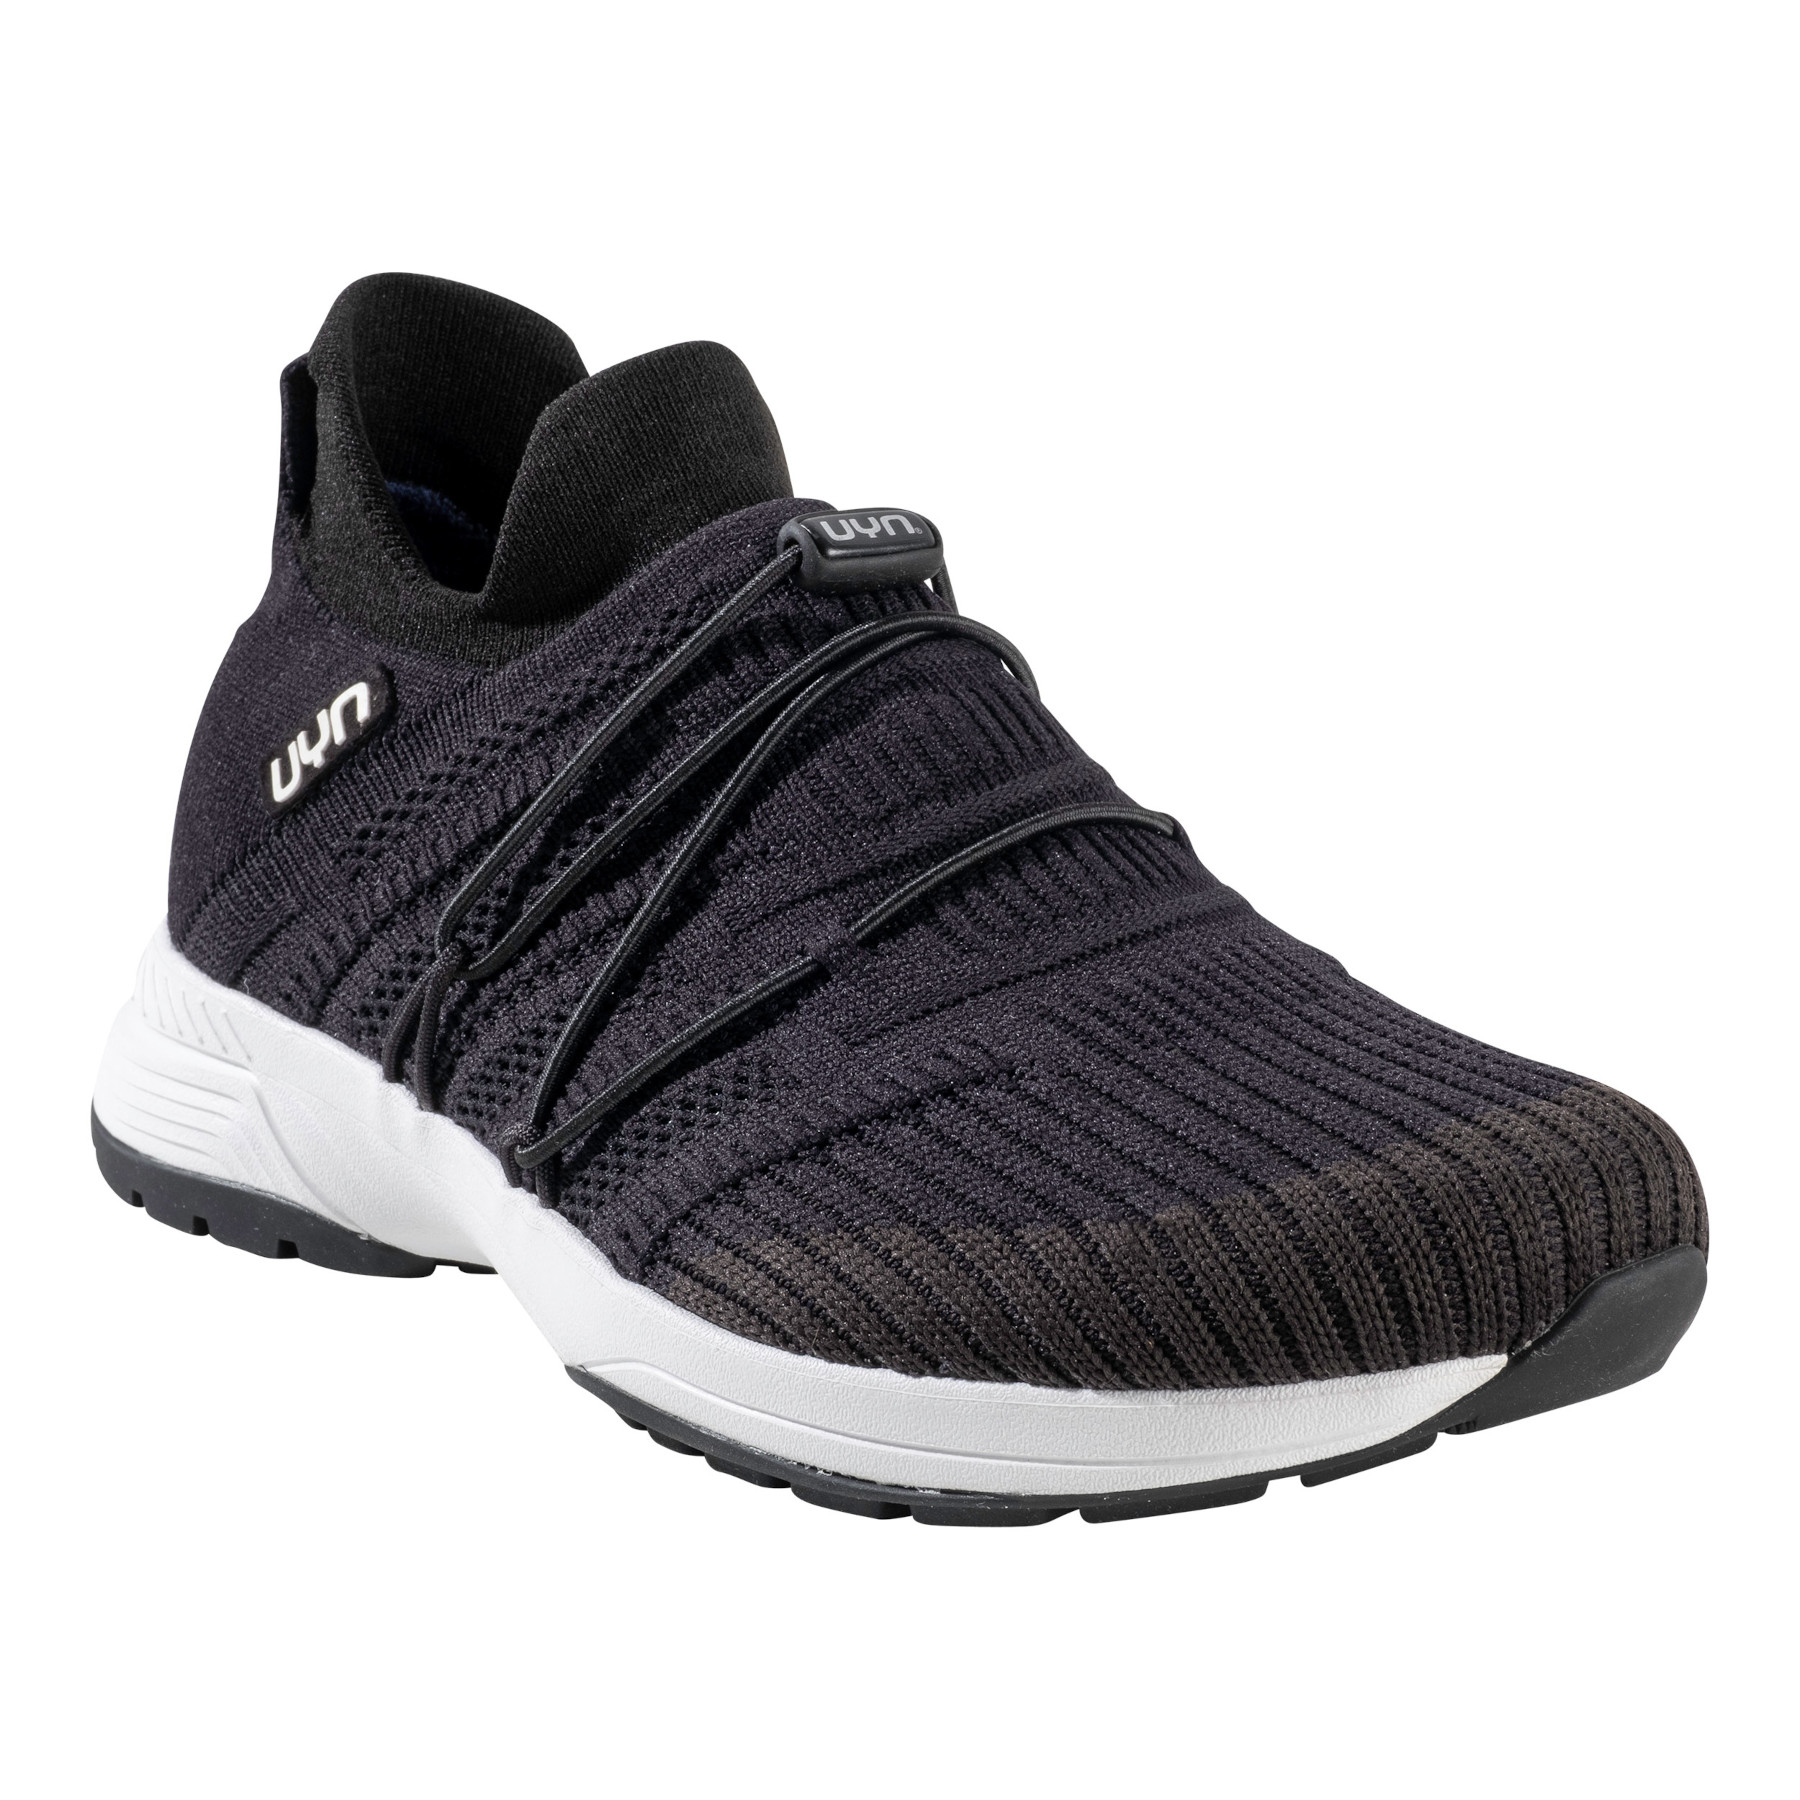 Image of UYN Free Flow Tune Running Shoes Women - Black/Carbon